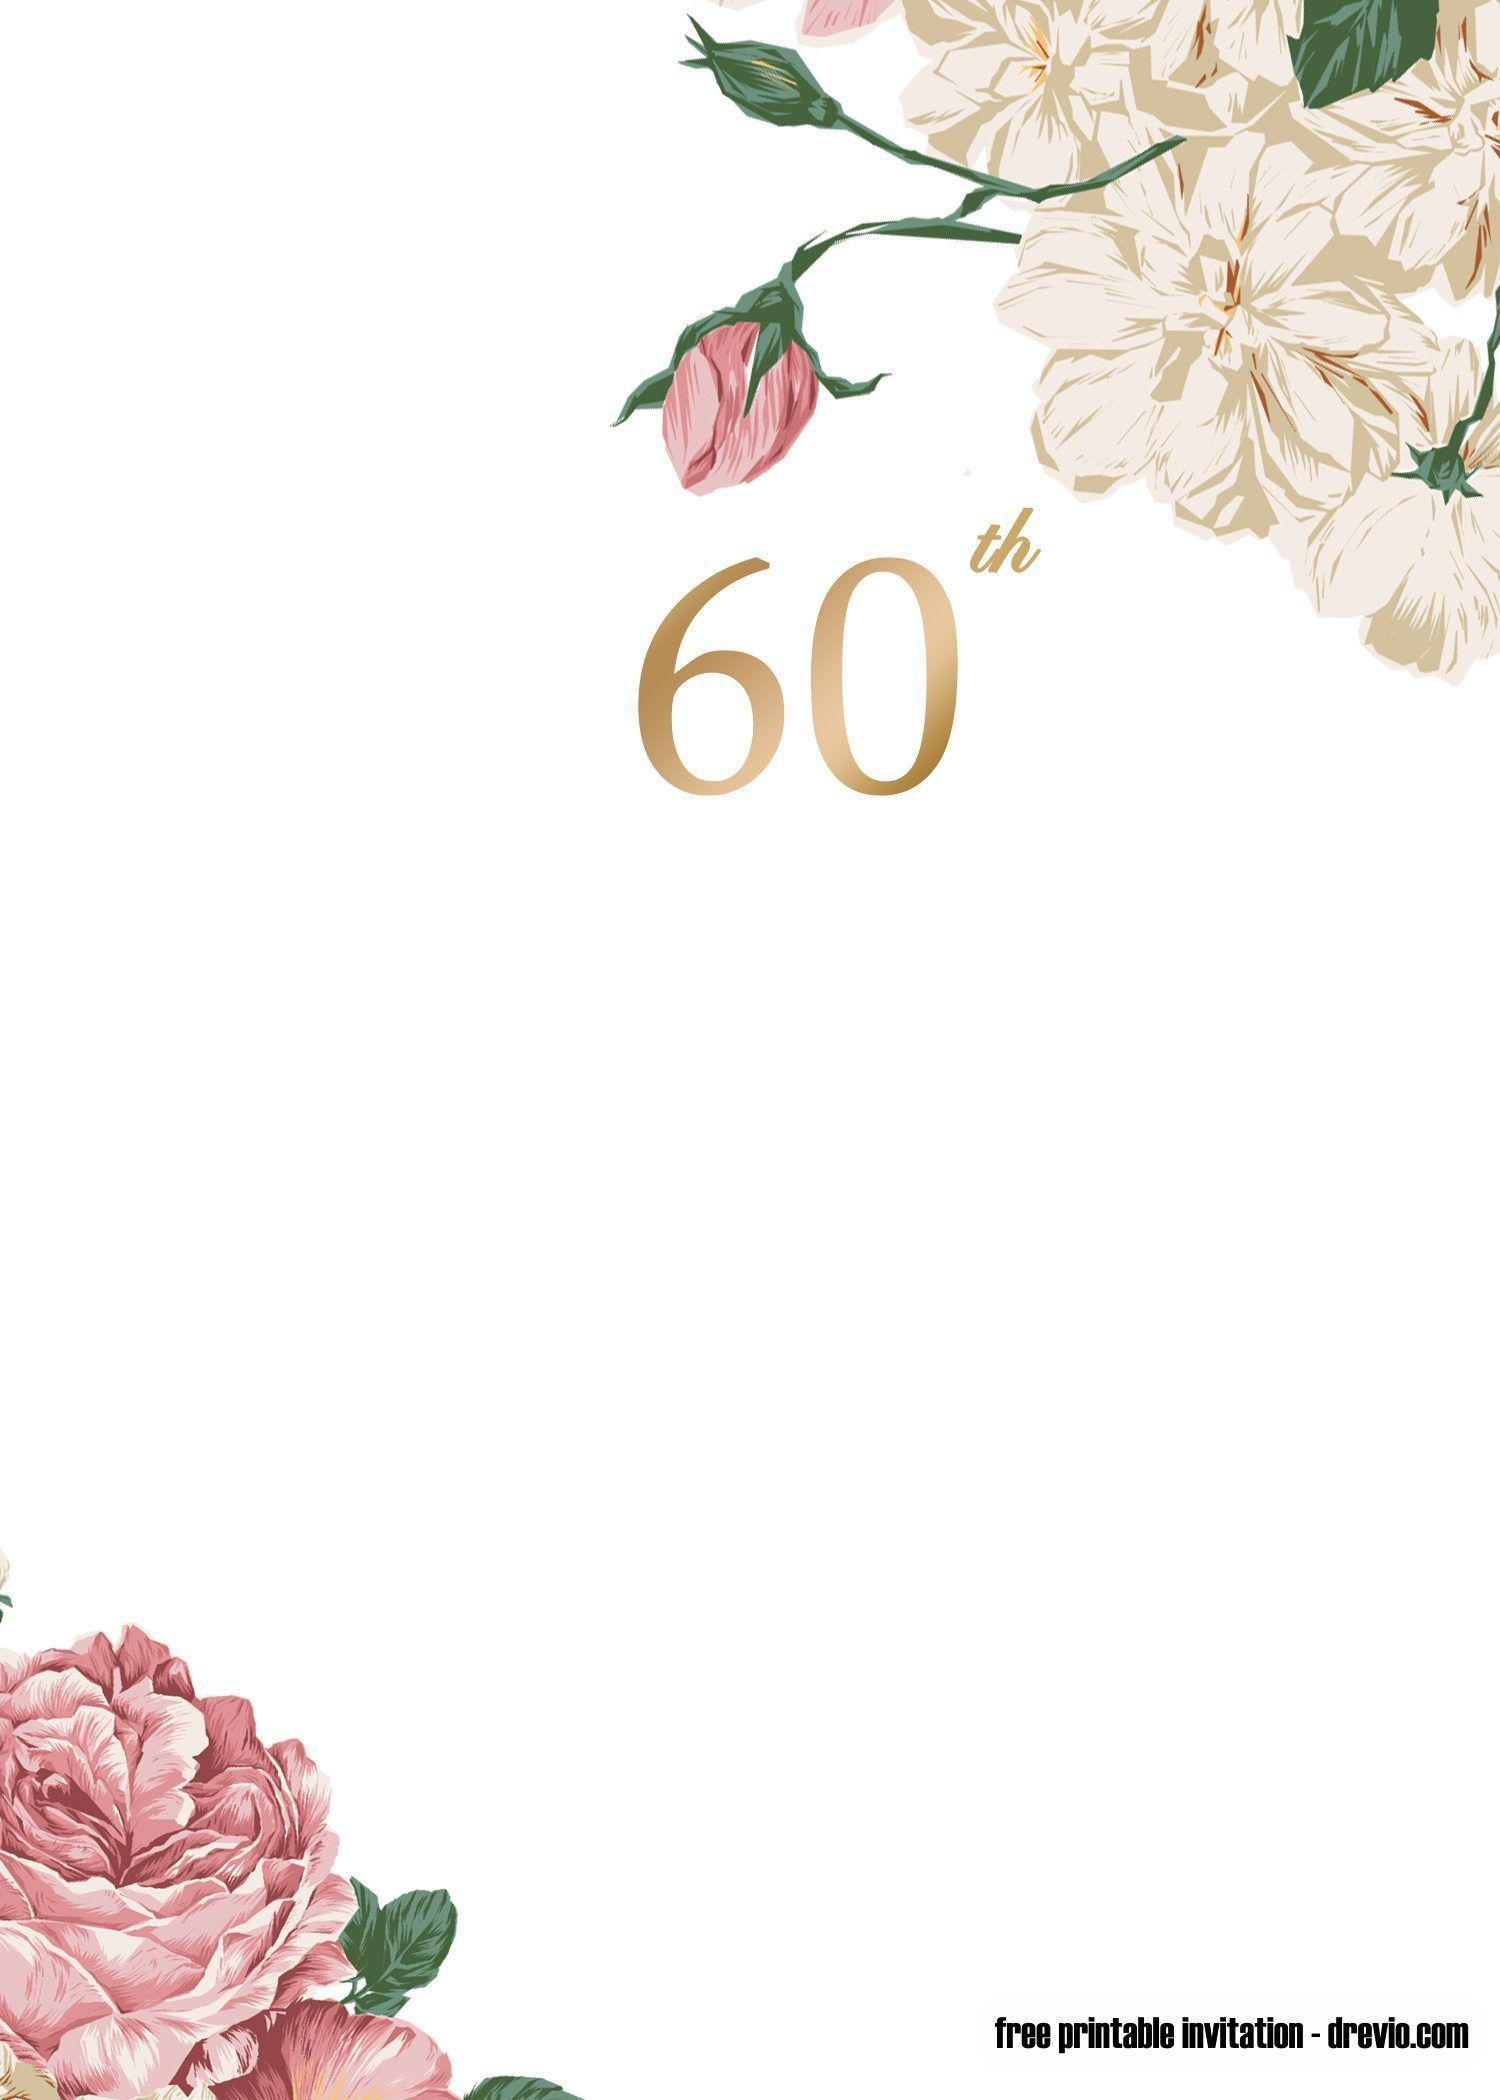 009 Excellent 60 Birthday Invite Template Picture  Templates 60th Printable FreeFull